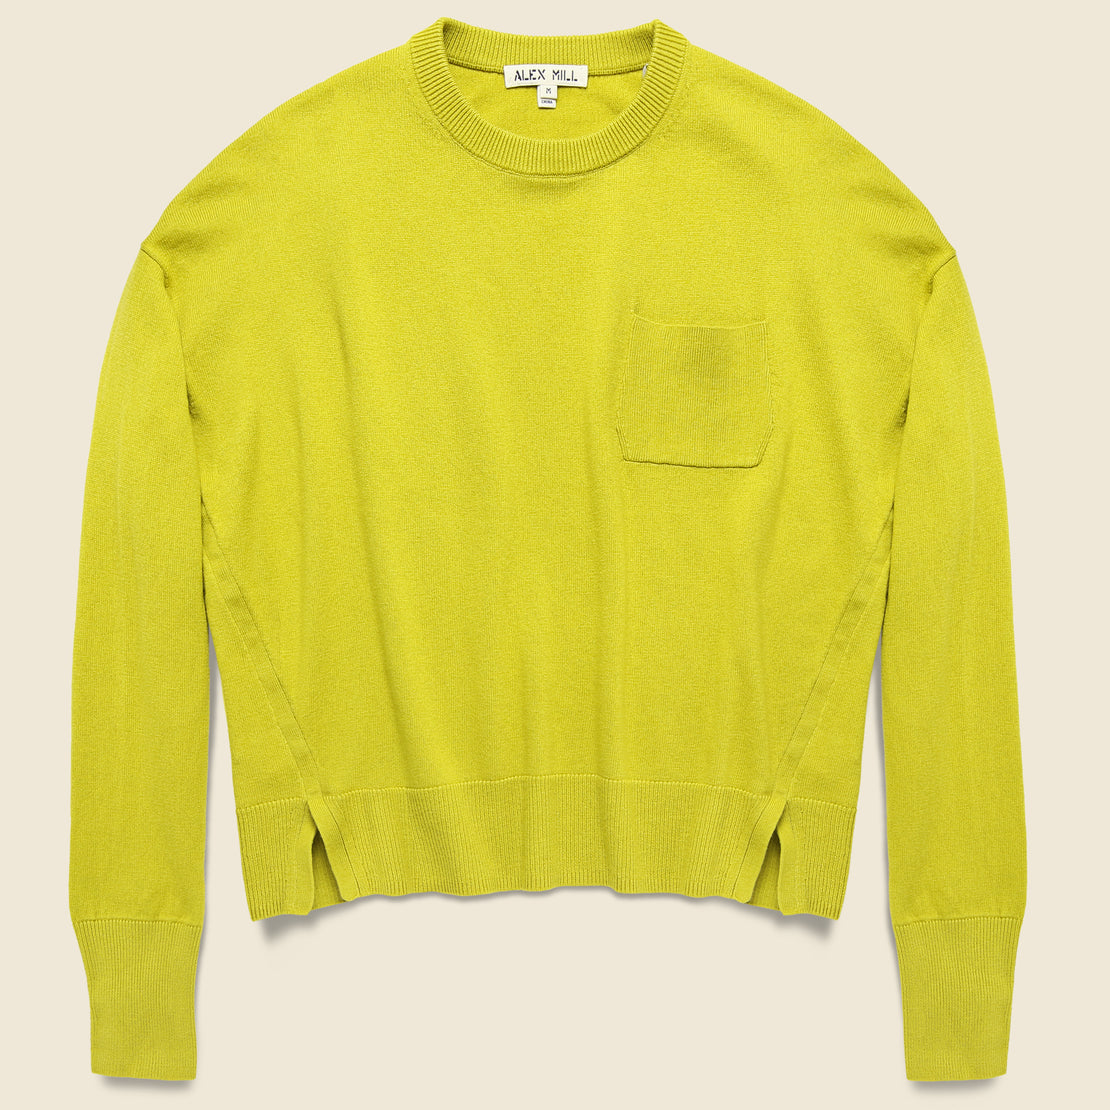 Alex Mill Cropped Pocket Sweater - Mustard